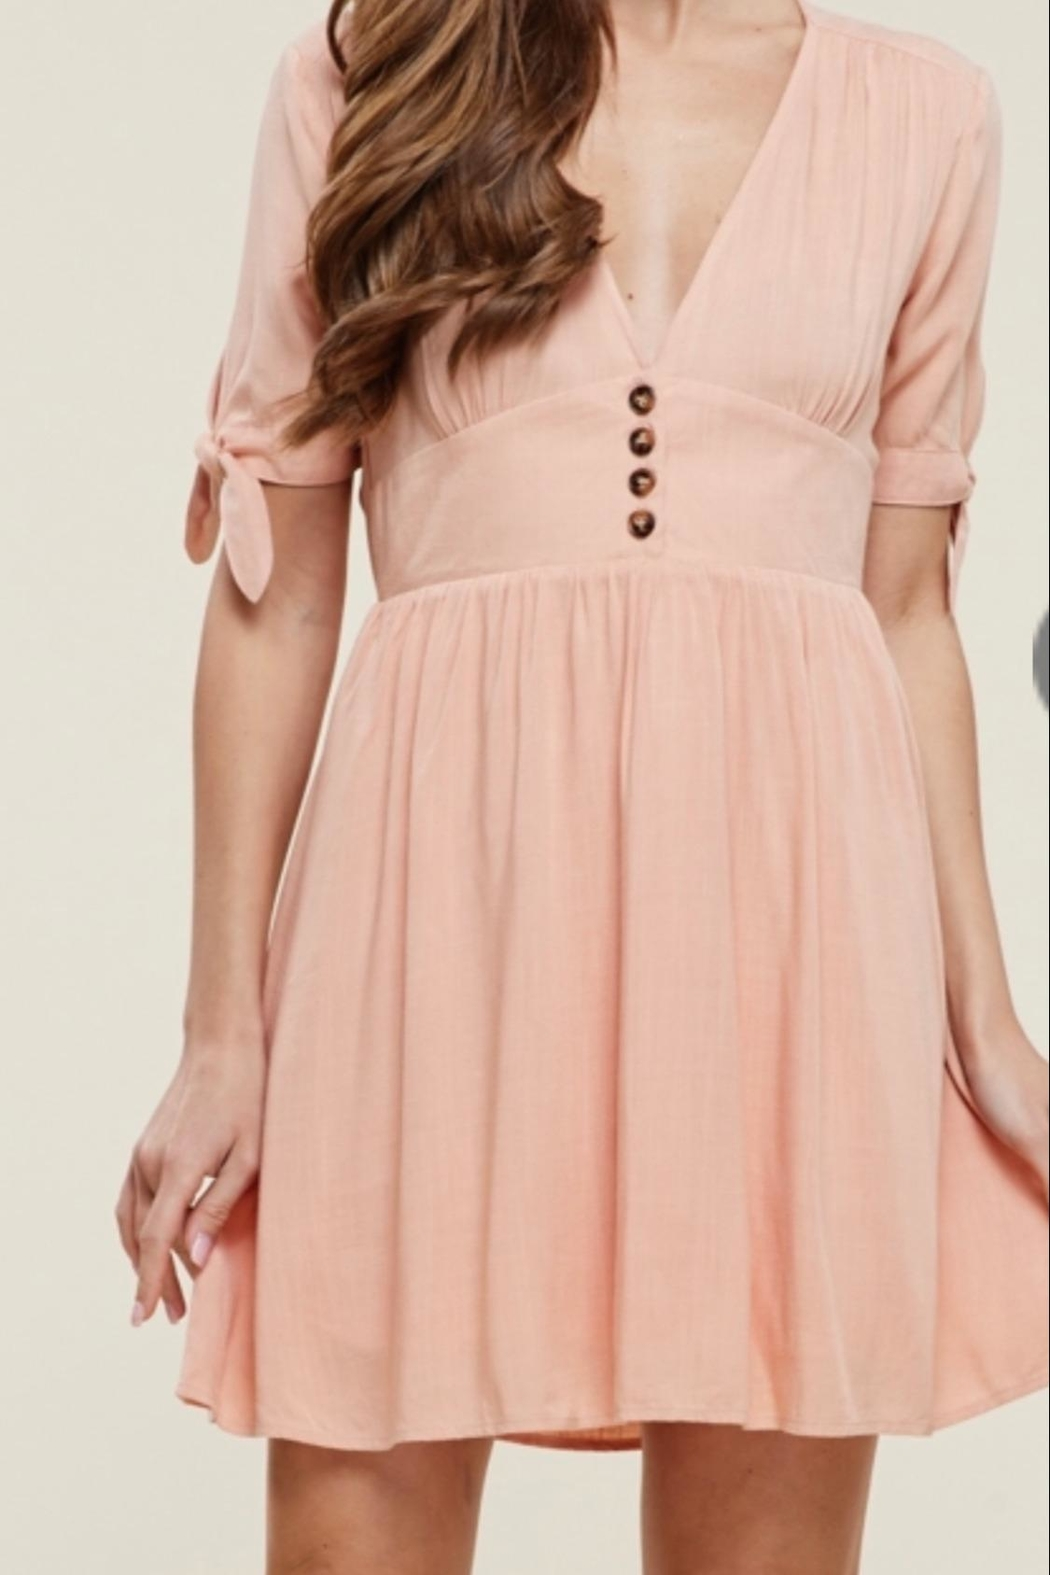 Staccato Dusty Peach Dress - Main Image